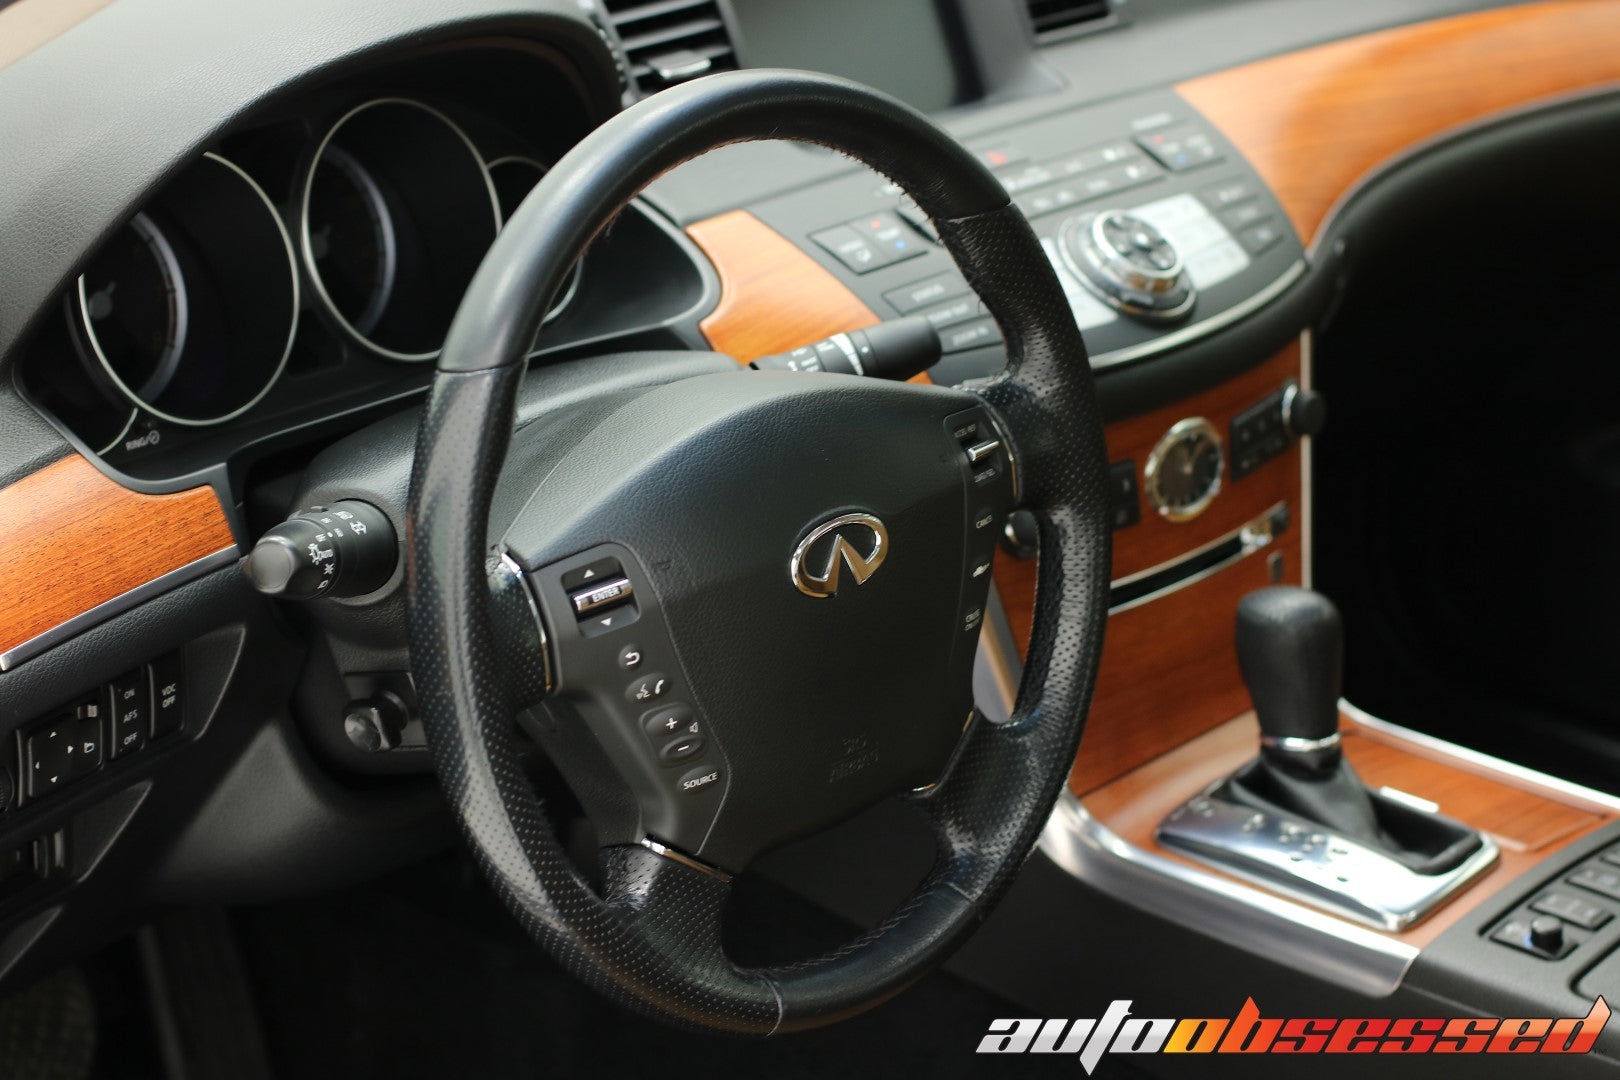 2006 Infinity M35x Clean Room Interior Detailing Complete - Auto Obsessed